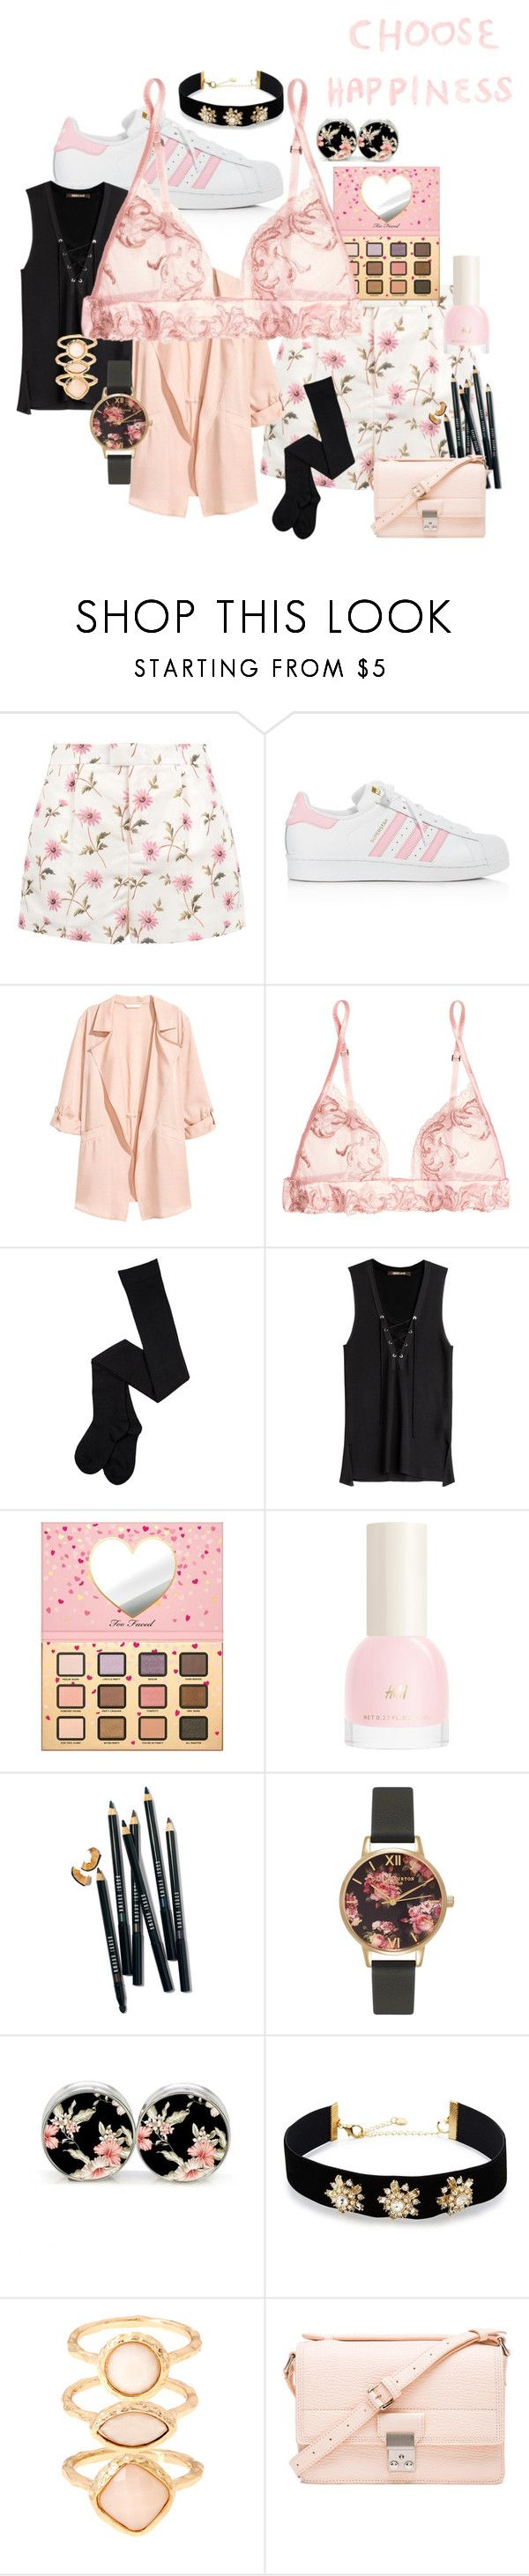 """The Prettiest Underpinnings #3"" by pantherinae ❤ liked on Polyvore featuring RED Valentino, adidas, Jakke, La Perla, Roberto Cavalli, Too Faced Cosmetics, H&M, Bobbi Brown Cosmetics, Olivia Burton and Lydell NYC"